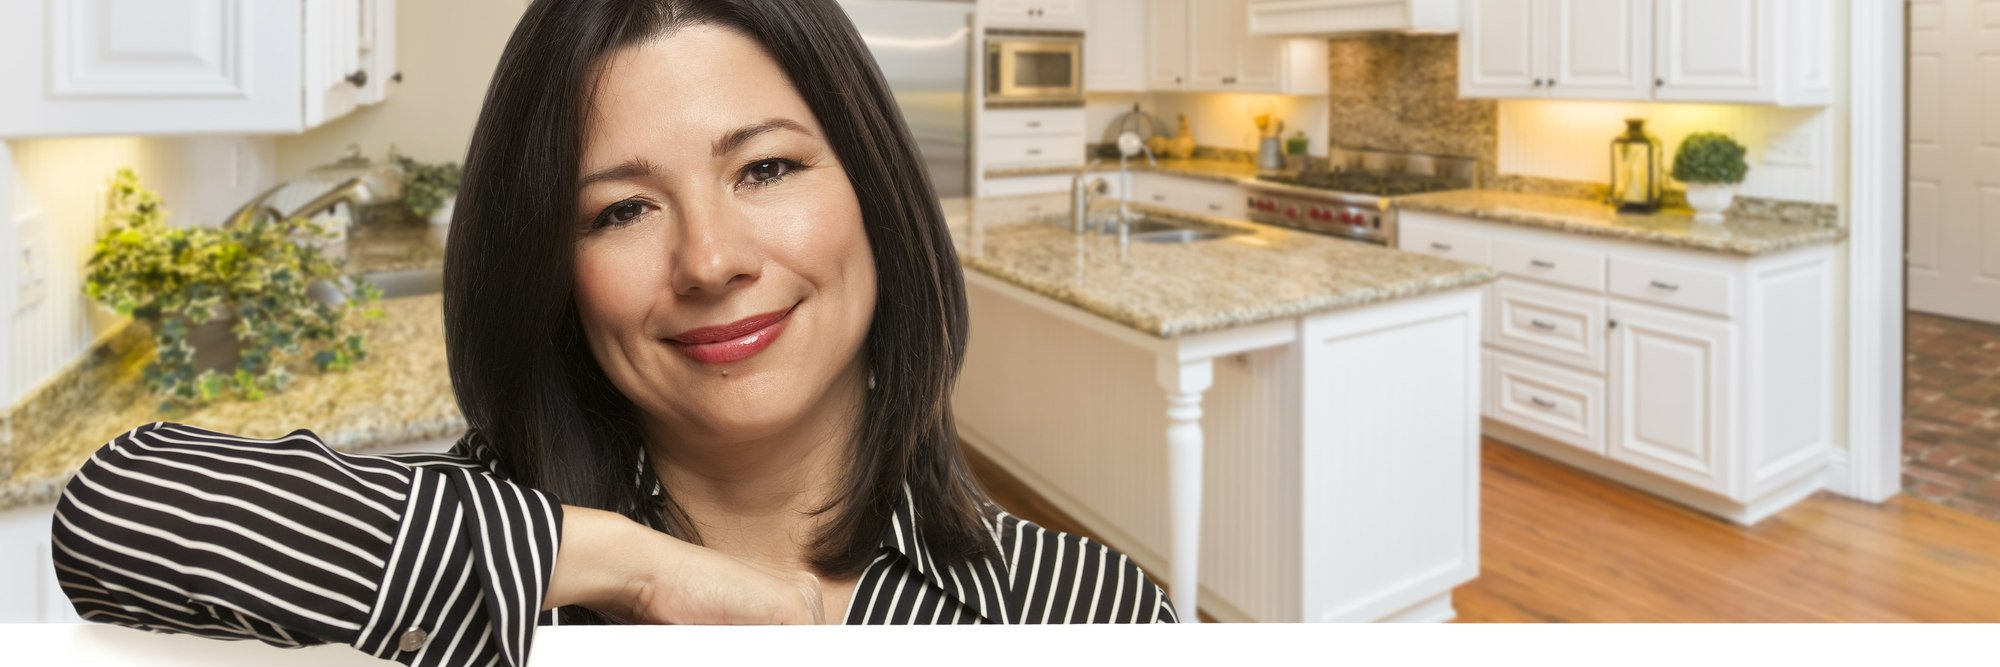 Hispanic Woman Leaning Against White Board In Custom Kitchen Interior.